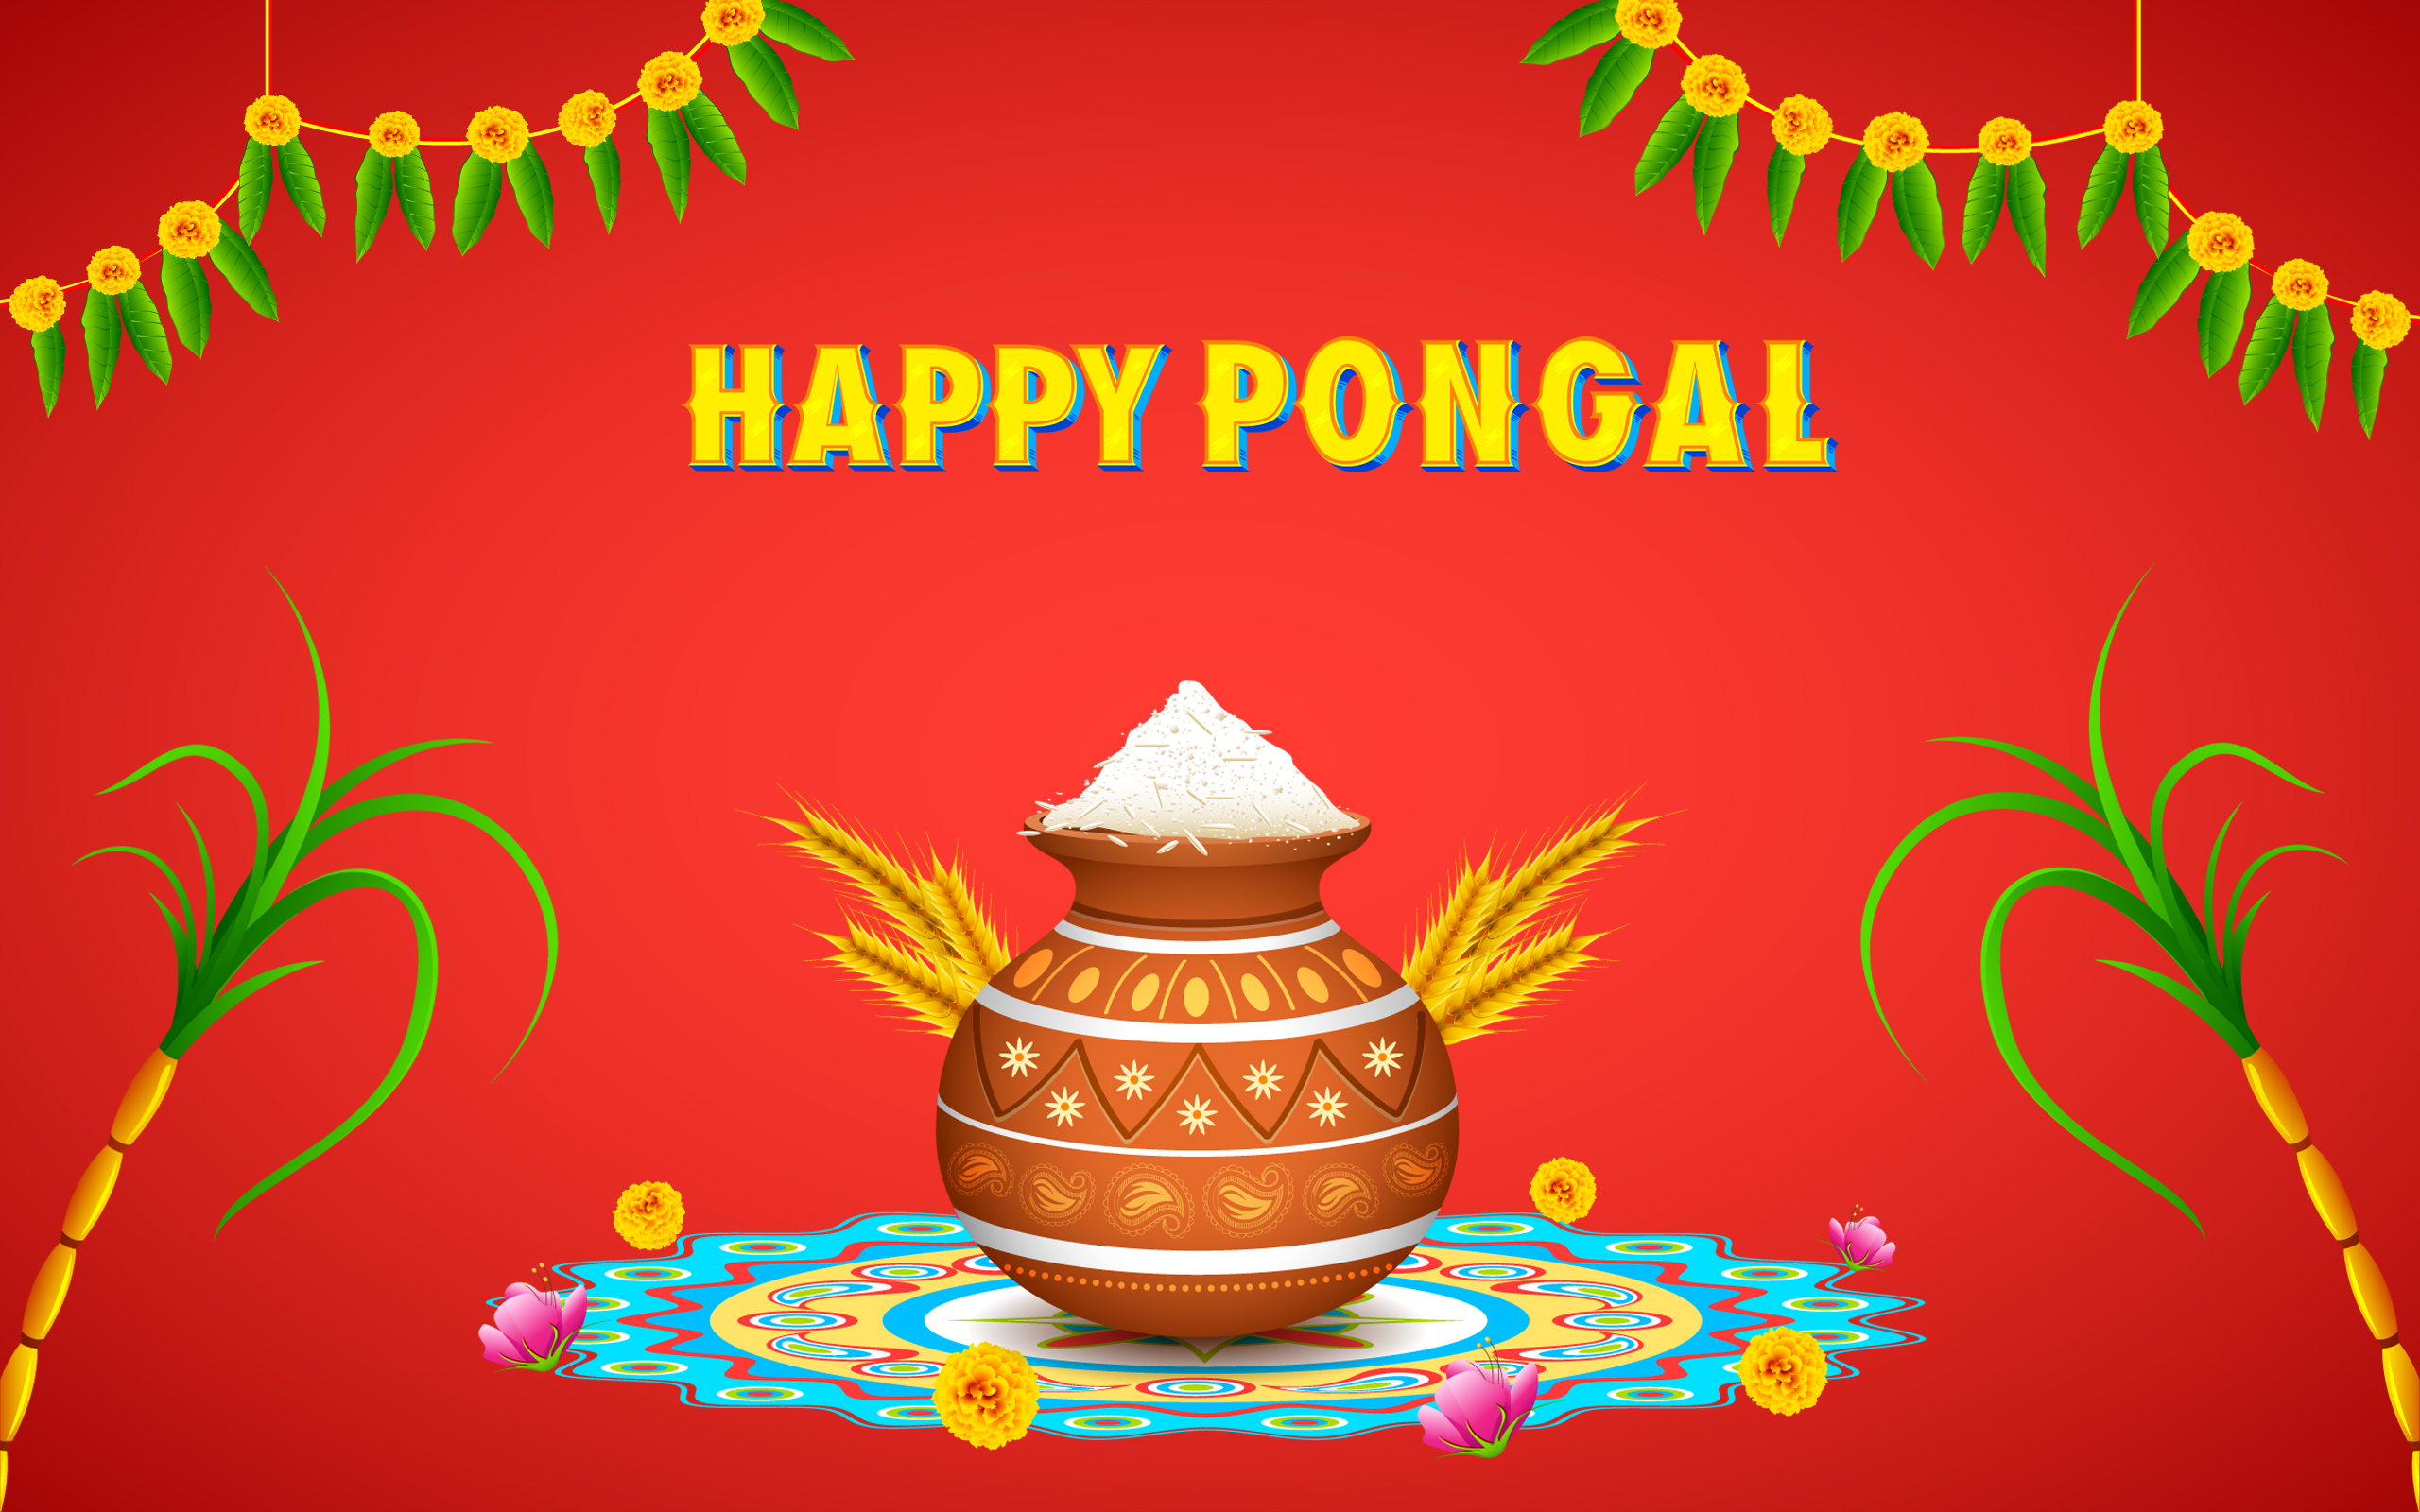 Happy pongal wallpapers pictures images free download techicy m4hsunfo